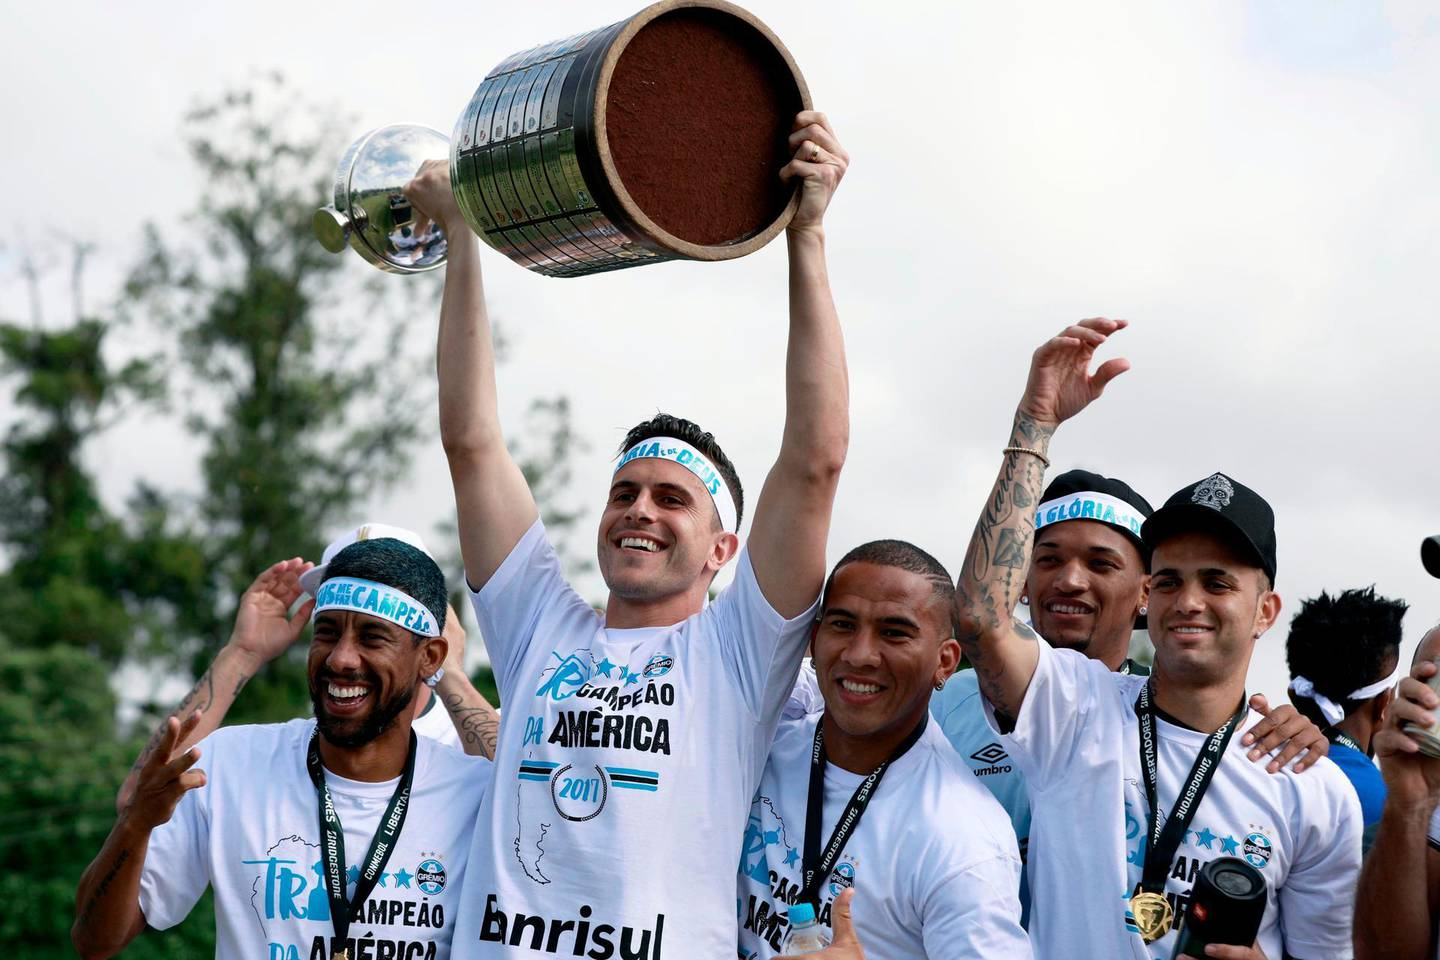 TOPSHOT - Brazil's Gremio goalkeeper Marcelo Grohe (2-L) raises the Copa Libertadores 2017 trophy next to his teammates, as he celebrates their victory in Porto Alegre, Brazil on November 30, 2017.  Brazilian side Gremio won their third Copa Libertadores crown on Wednesday with a 2-1 triumph over Argentina's Lanus in La Fortaleza stadium. With the victory, Gremio qualified directly into the semi-finals of the Club World Cup in December, where they'll face either Africa's Wydad Casablanca or CONCACAF representative Pachuca of Mexico. / AFP PHOTO / ITAMAR AGUIAR